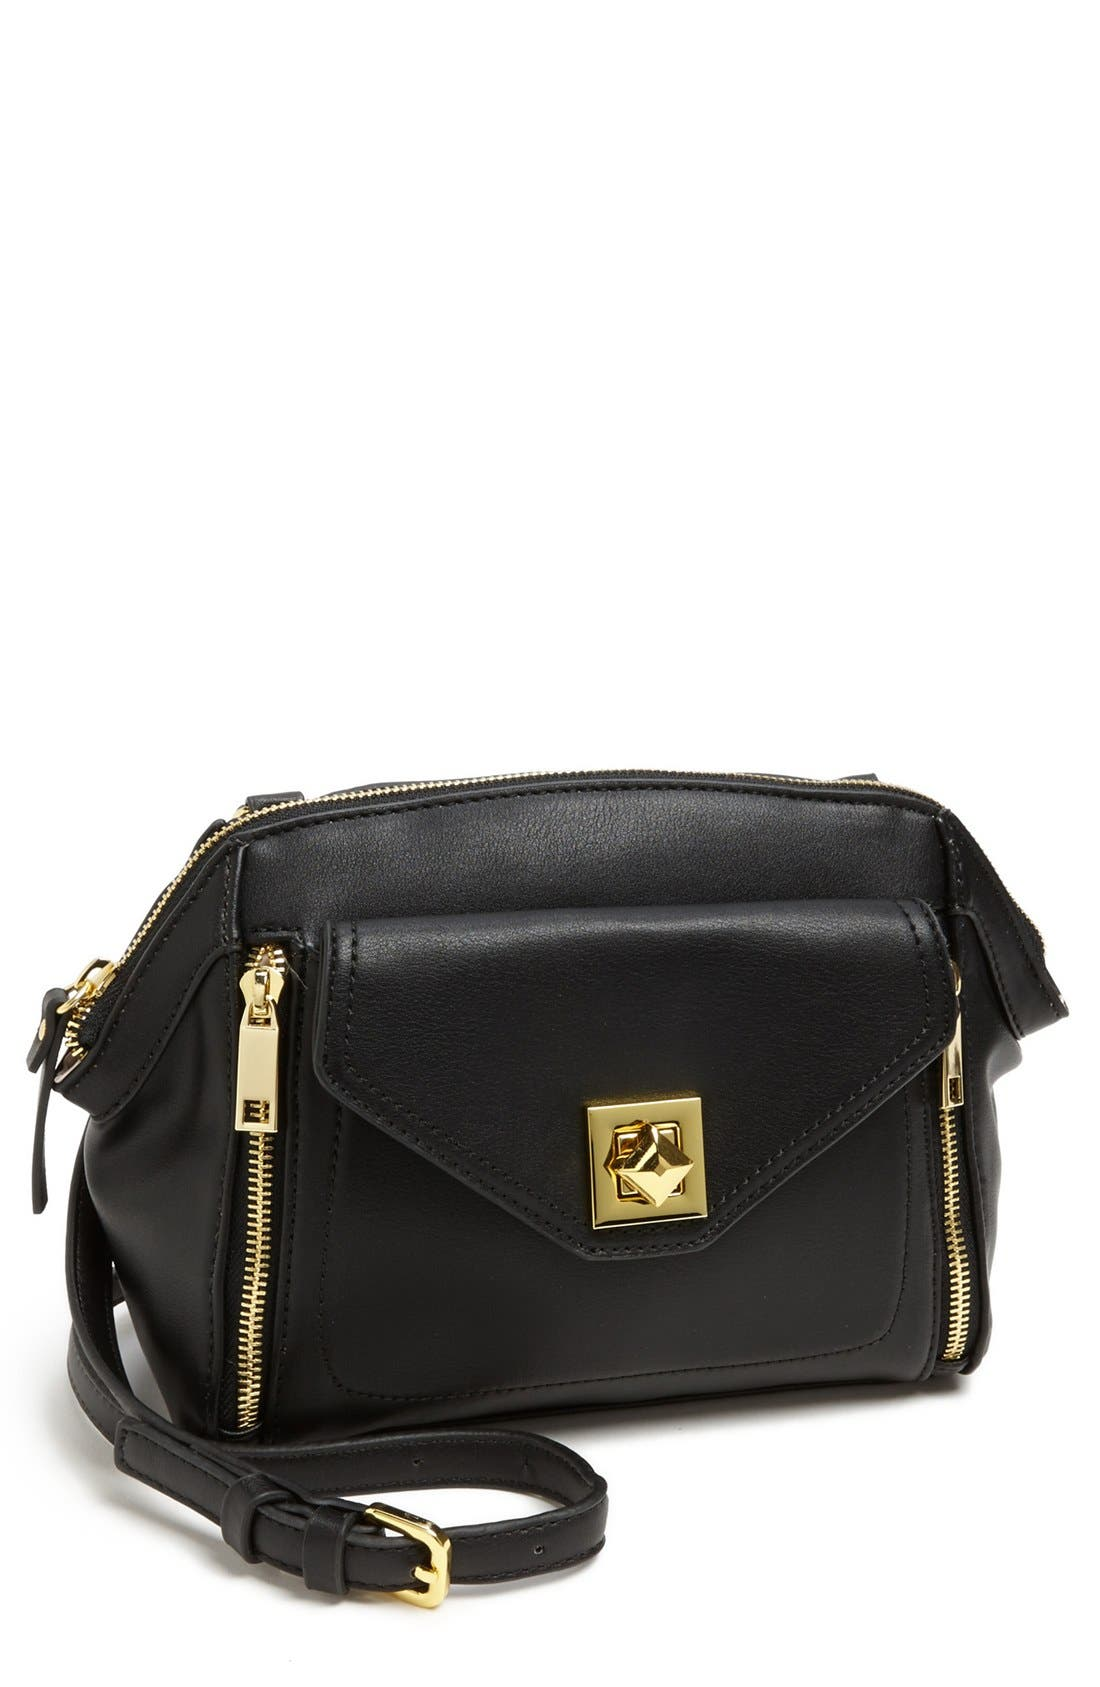 Main Image - Jessica Simpson 'Hadley' Crossbody Bag